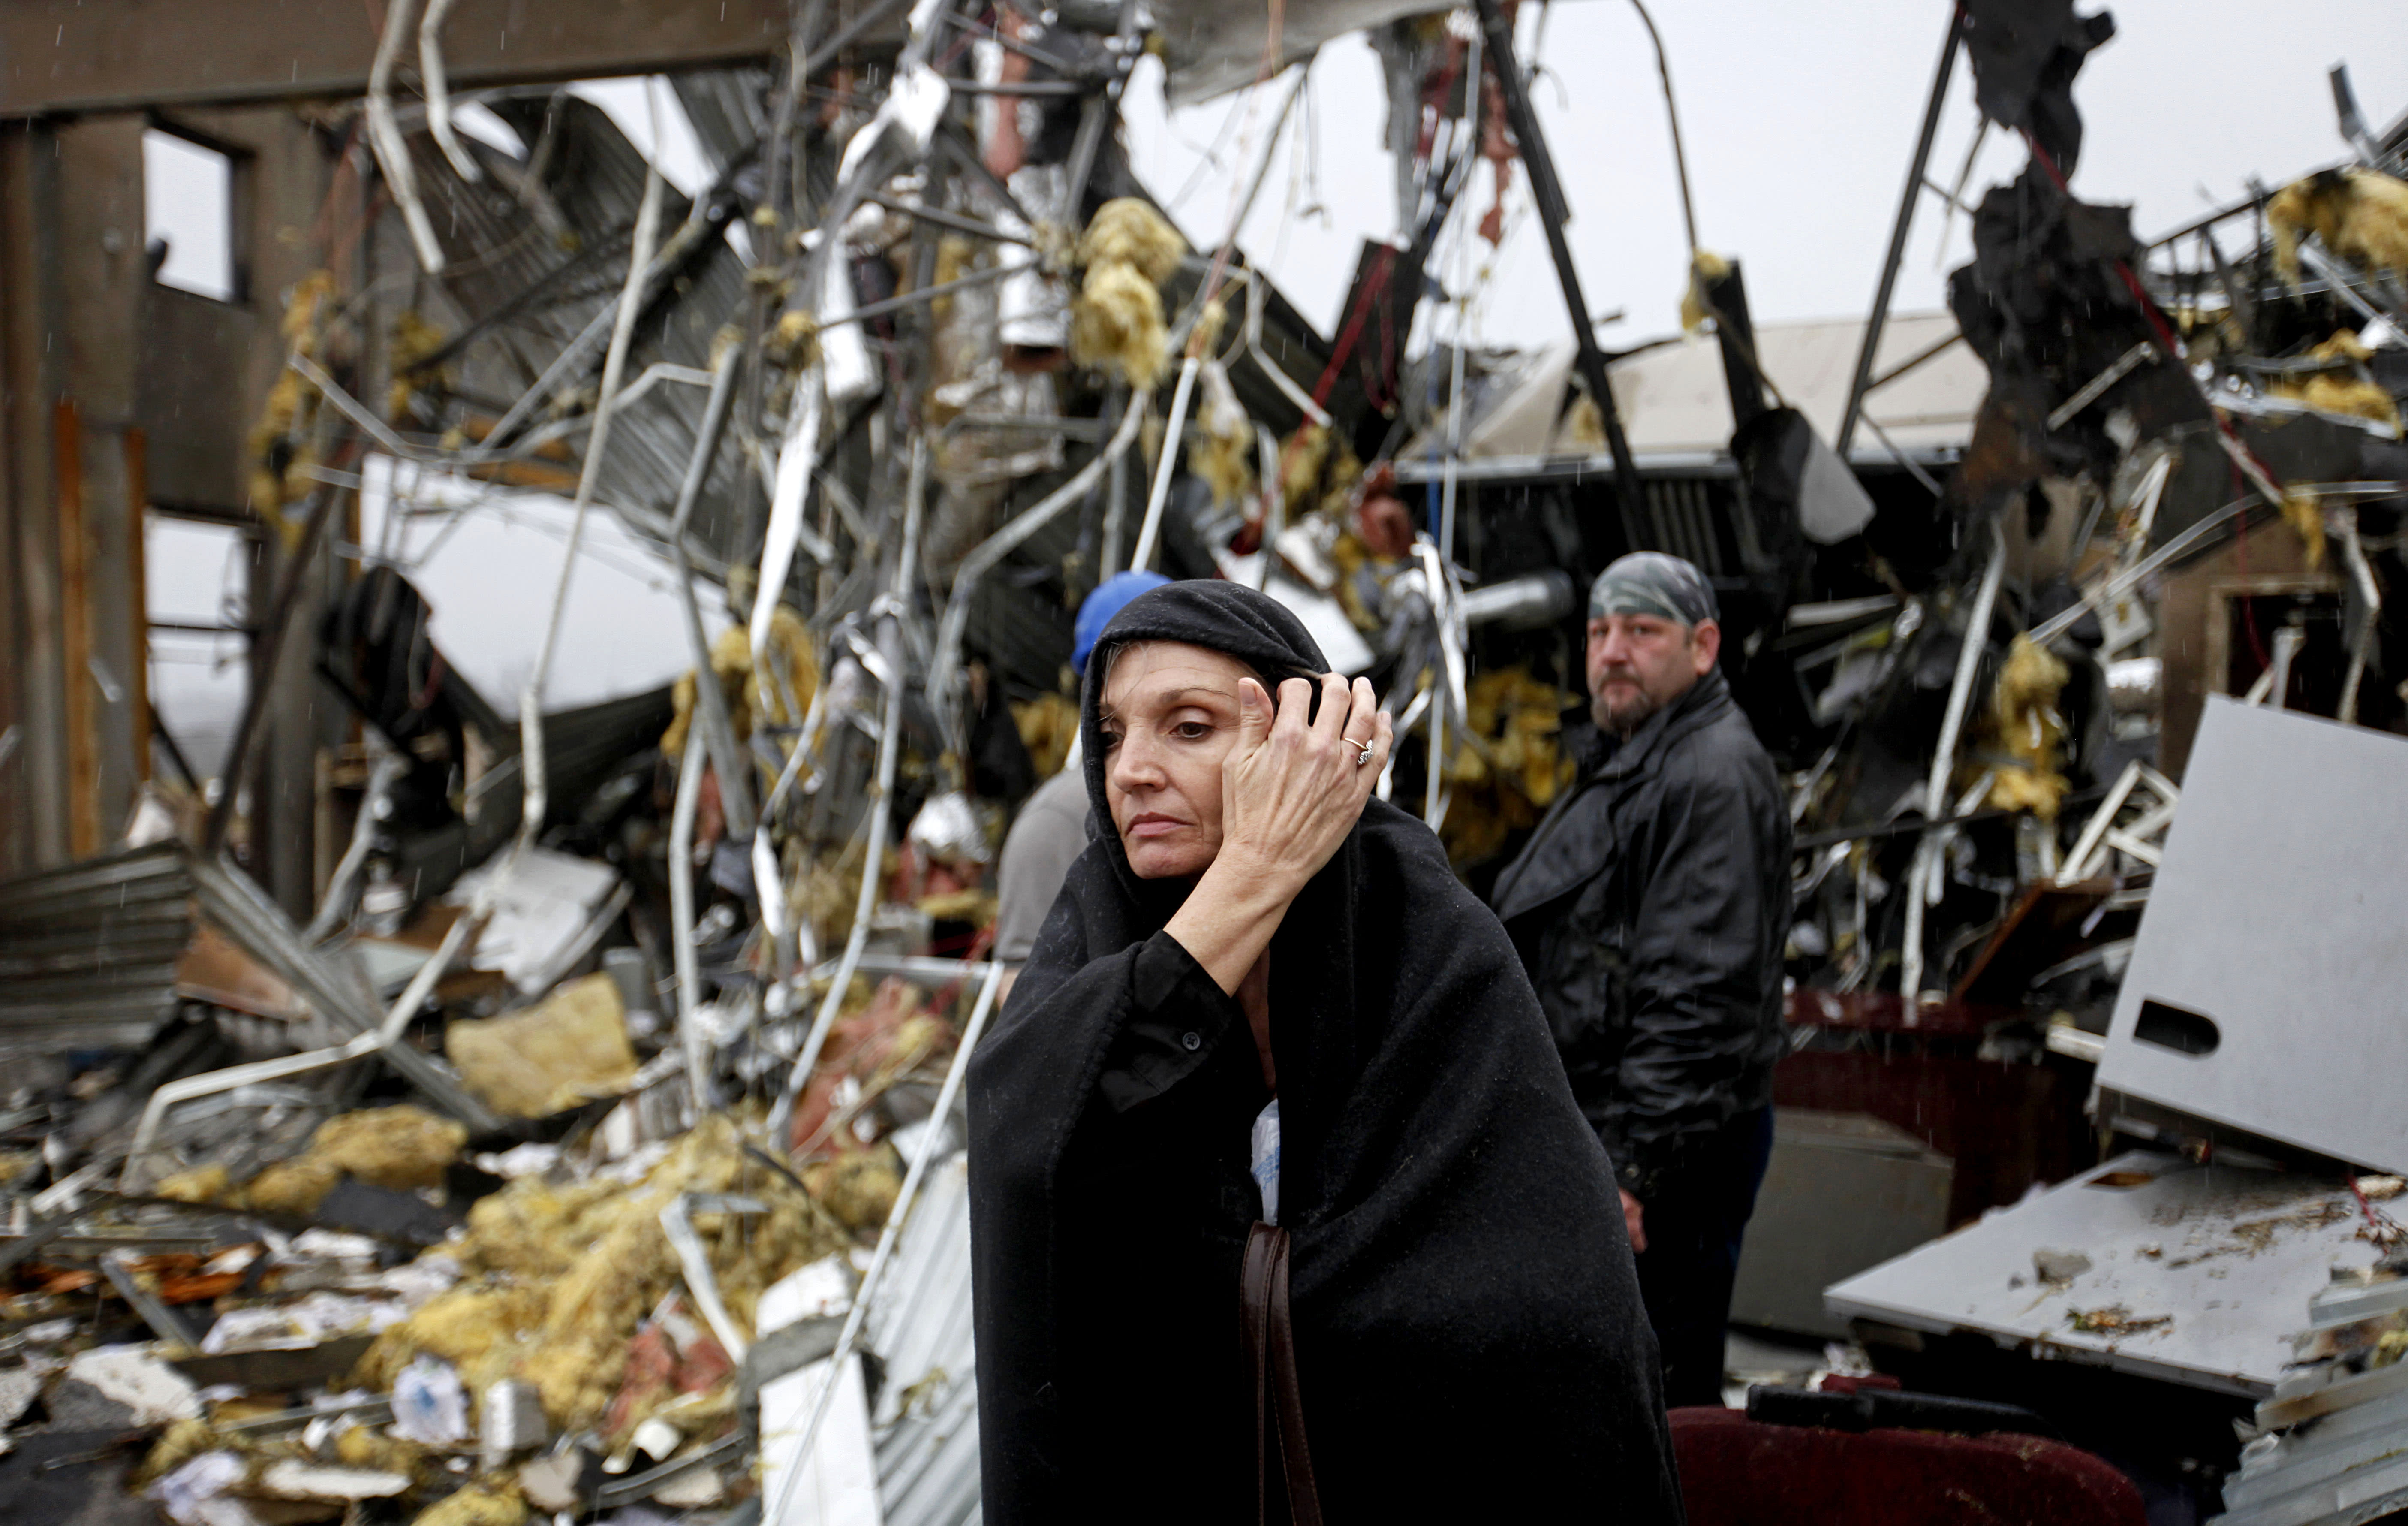 Pam Parker sifts through debris while looking for any personal belongings in the area where she was sitting at her desk when a tornado struck the Daiki plant, a metal fabrication company where she works in accounts payable, Wednesday, Jan. 30, 2013, in Adairsville, Ga. (AP Photo/David Goldman)